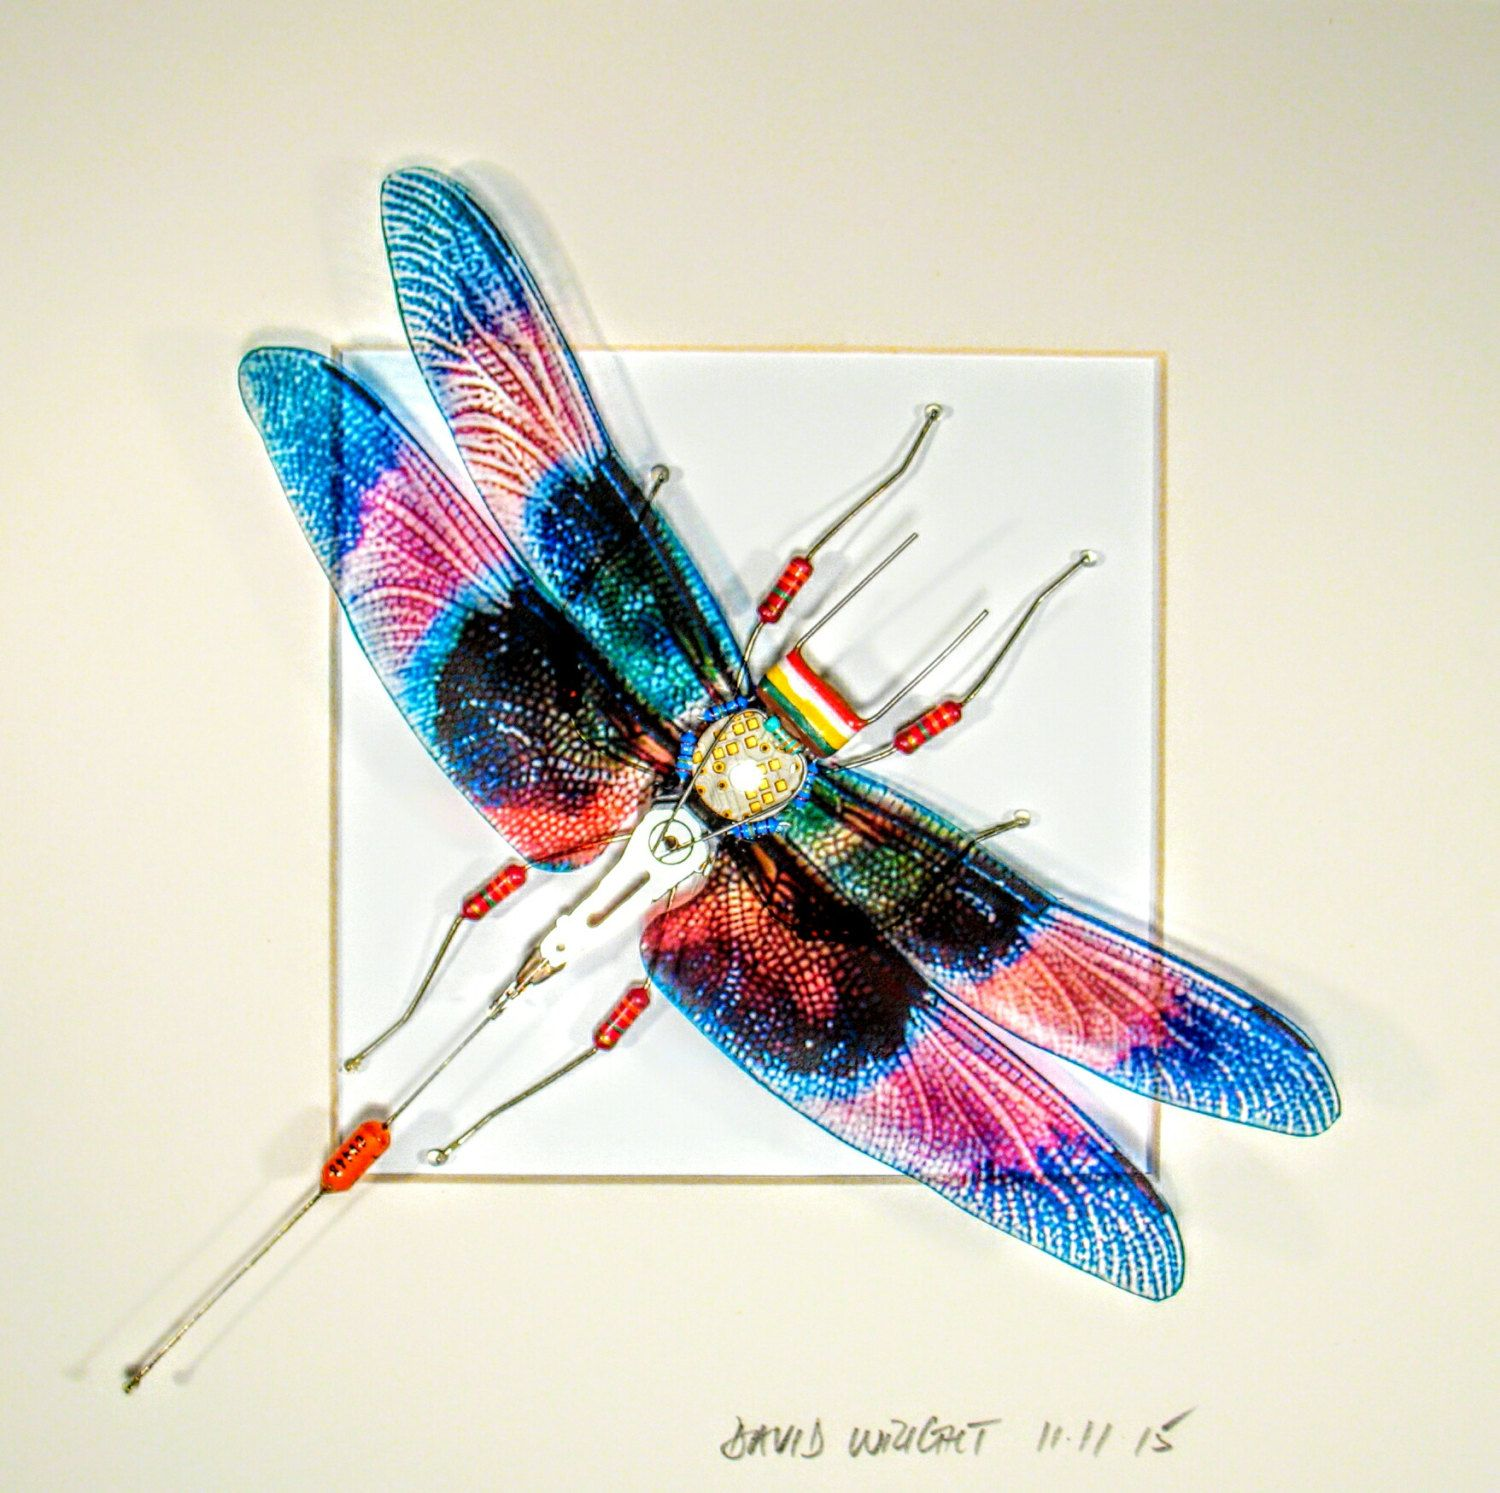 Dragonfly Wall Art dragonfly wall art - recycled circuit board bug - framed art